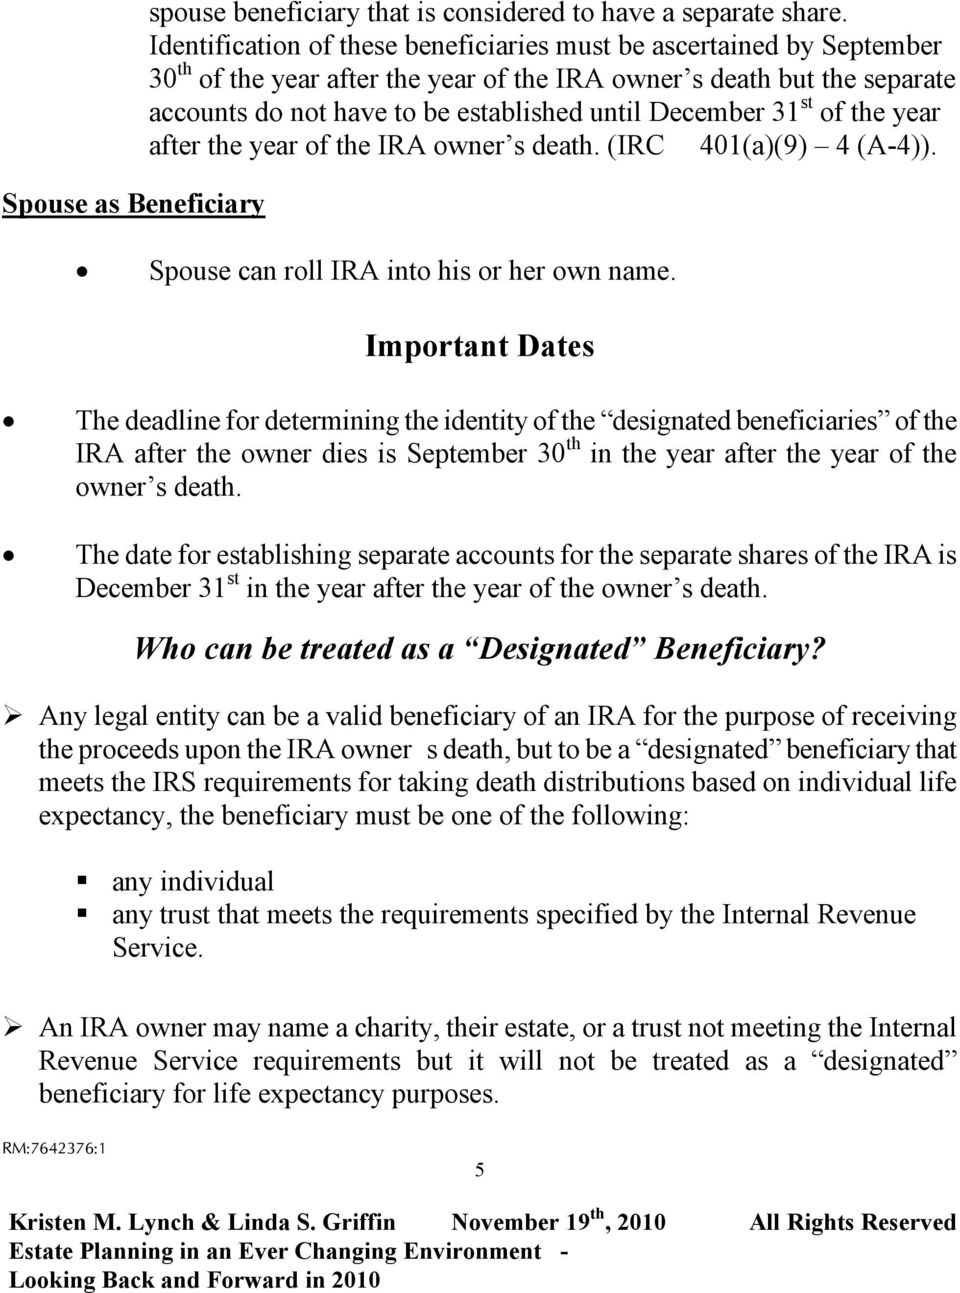 31 st of the year after the year of the IRA owner s death. (IRC 401(a)(9) 4 (A-4)). Spouse can roll IRA into his or her own name.